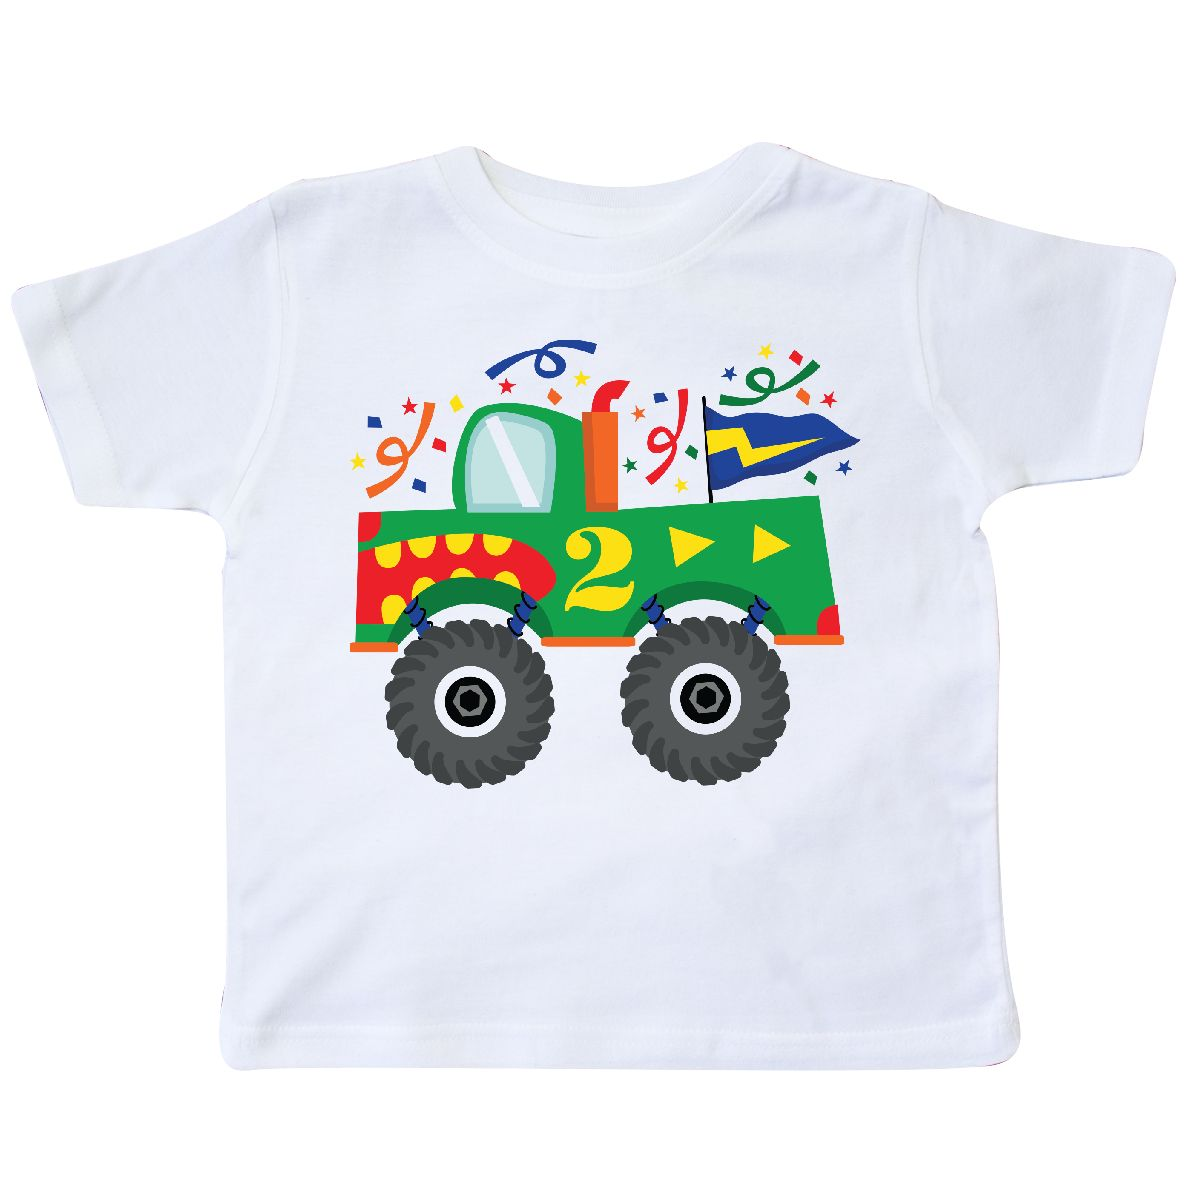 2nd Birthday Monster Truck Toddler T Shirt White 2T